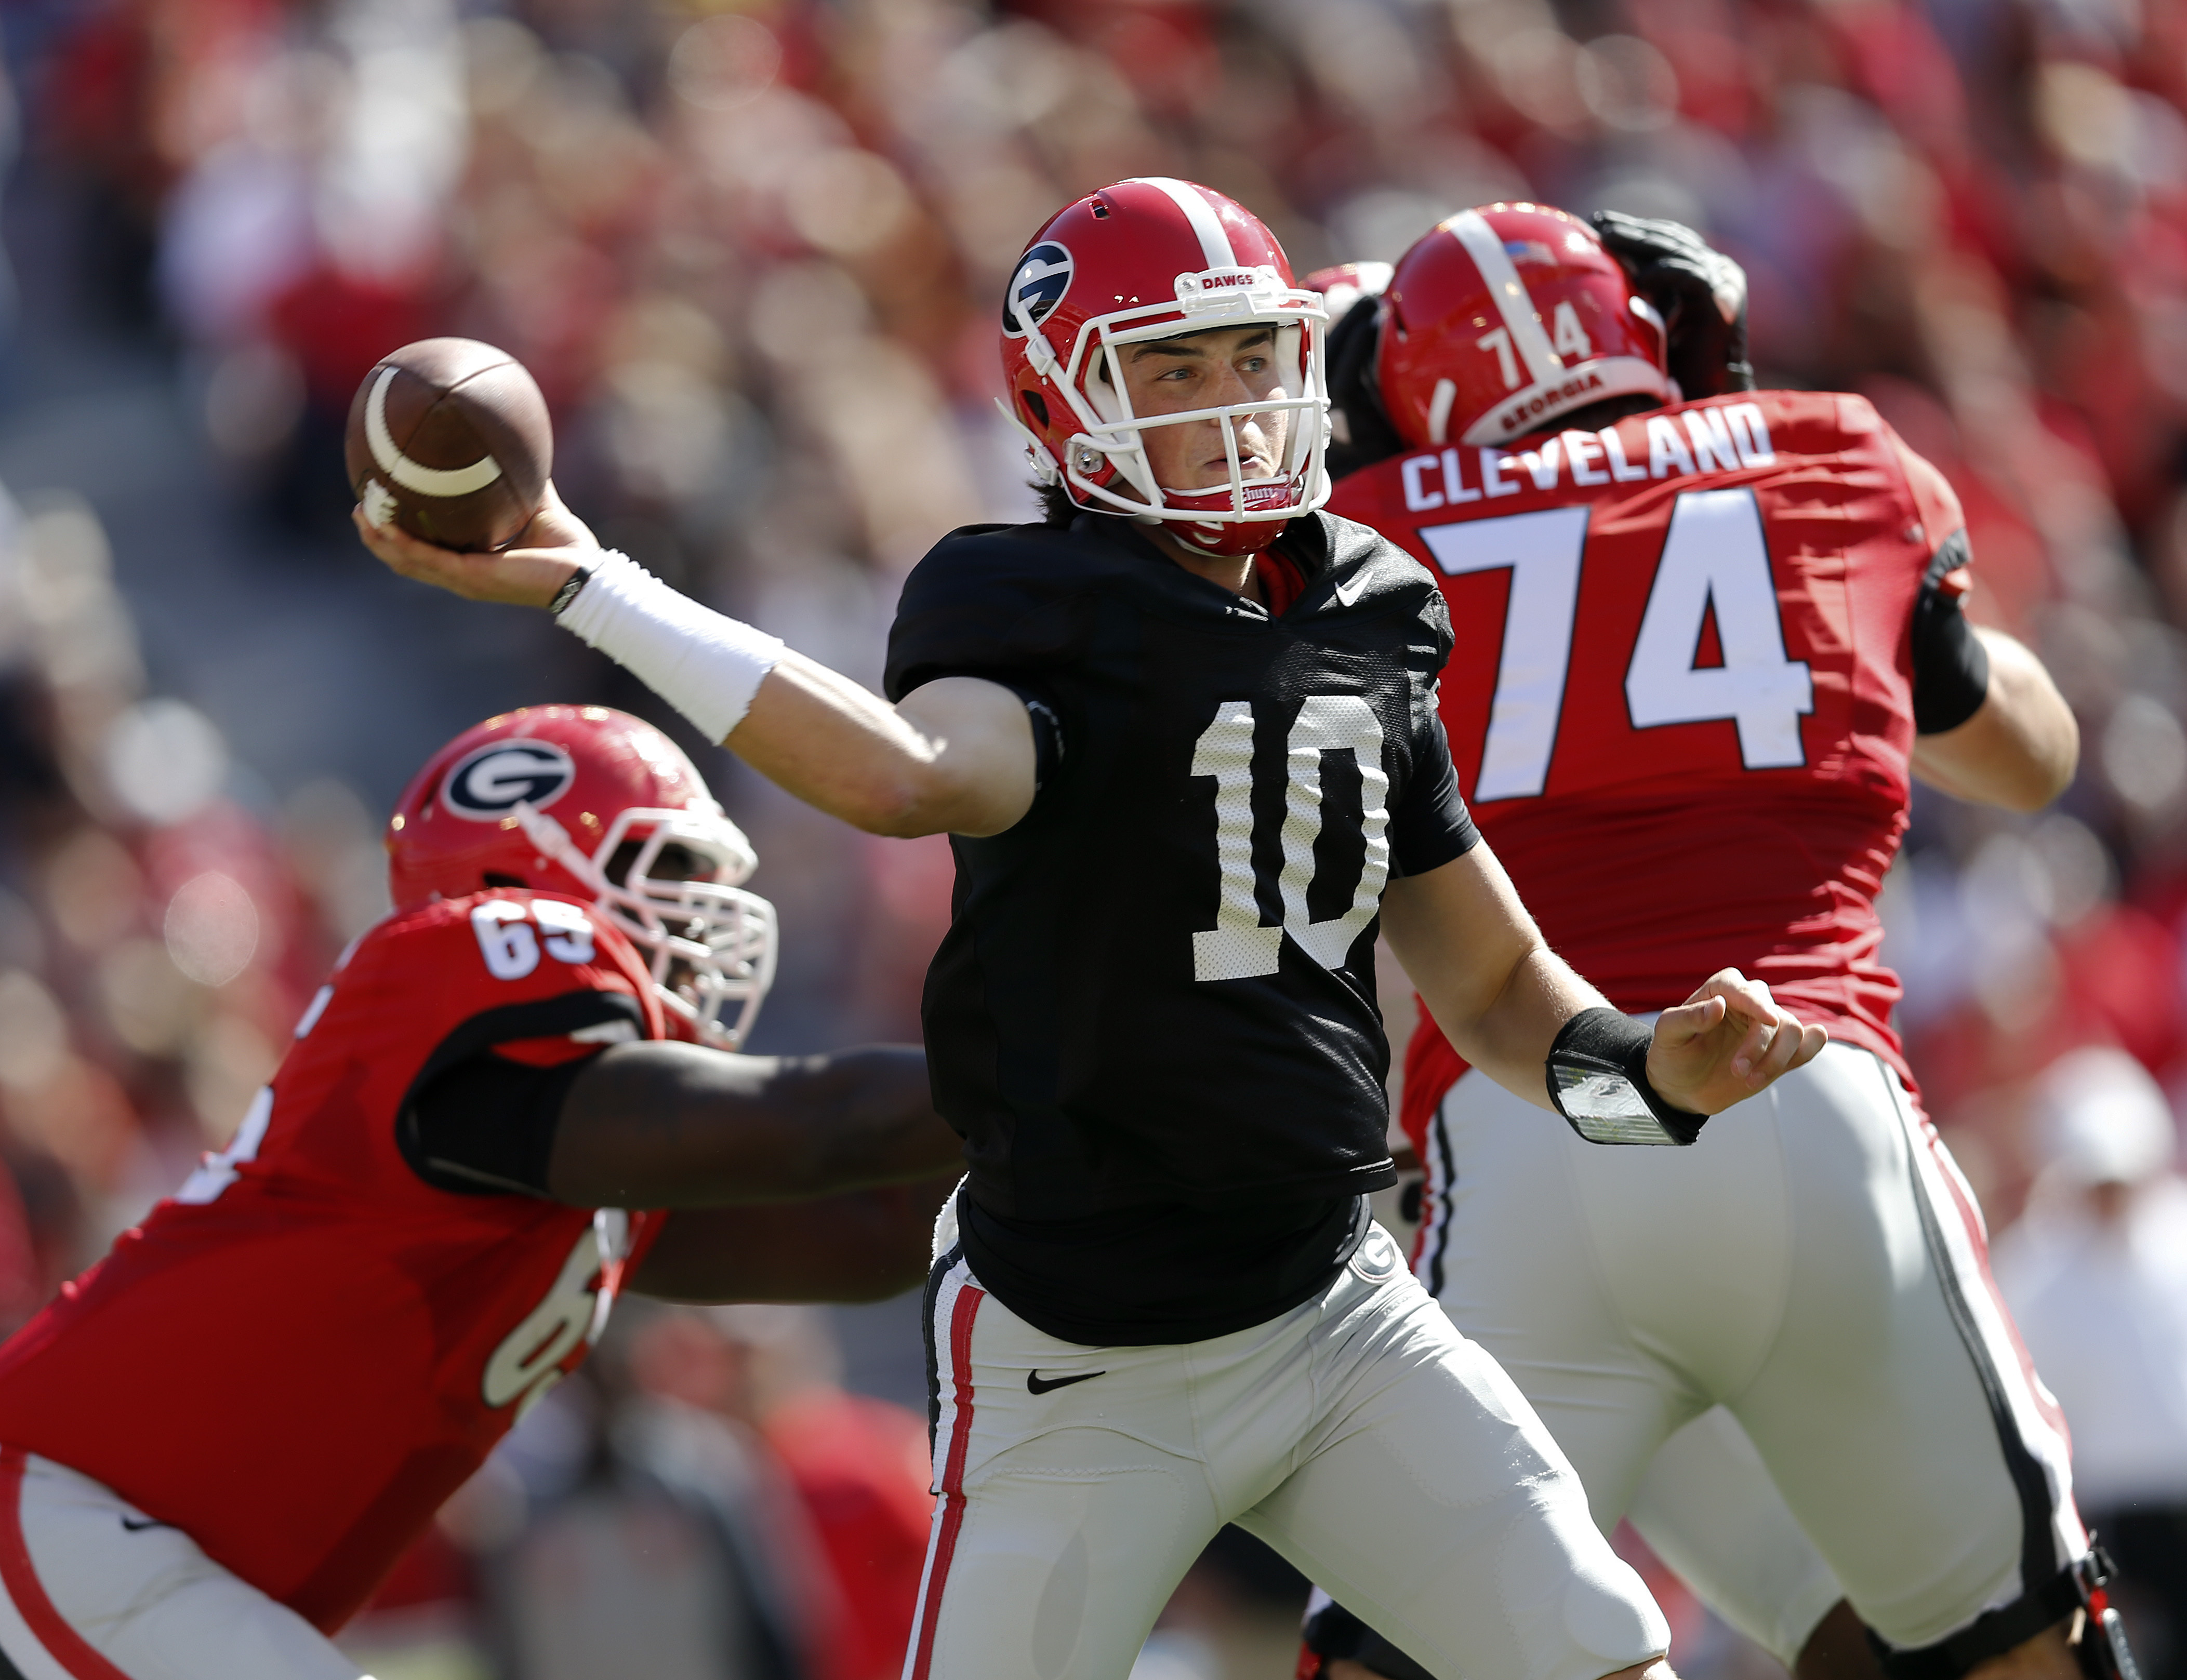 Georgia quarterback Jacob Eason throws during the first half of their spring intra-squad NCAA college football game Saturday, April 16, 2016, in Athens, Ga. (AP Photo/John Bazemore)